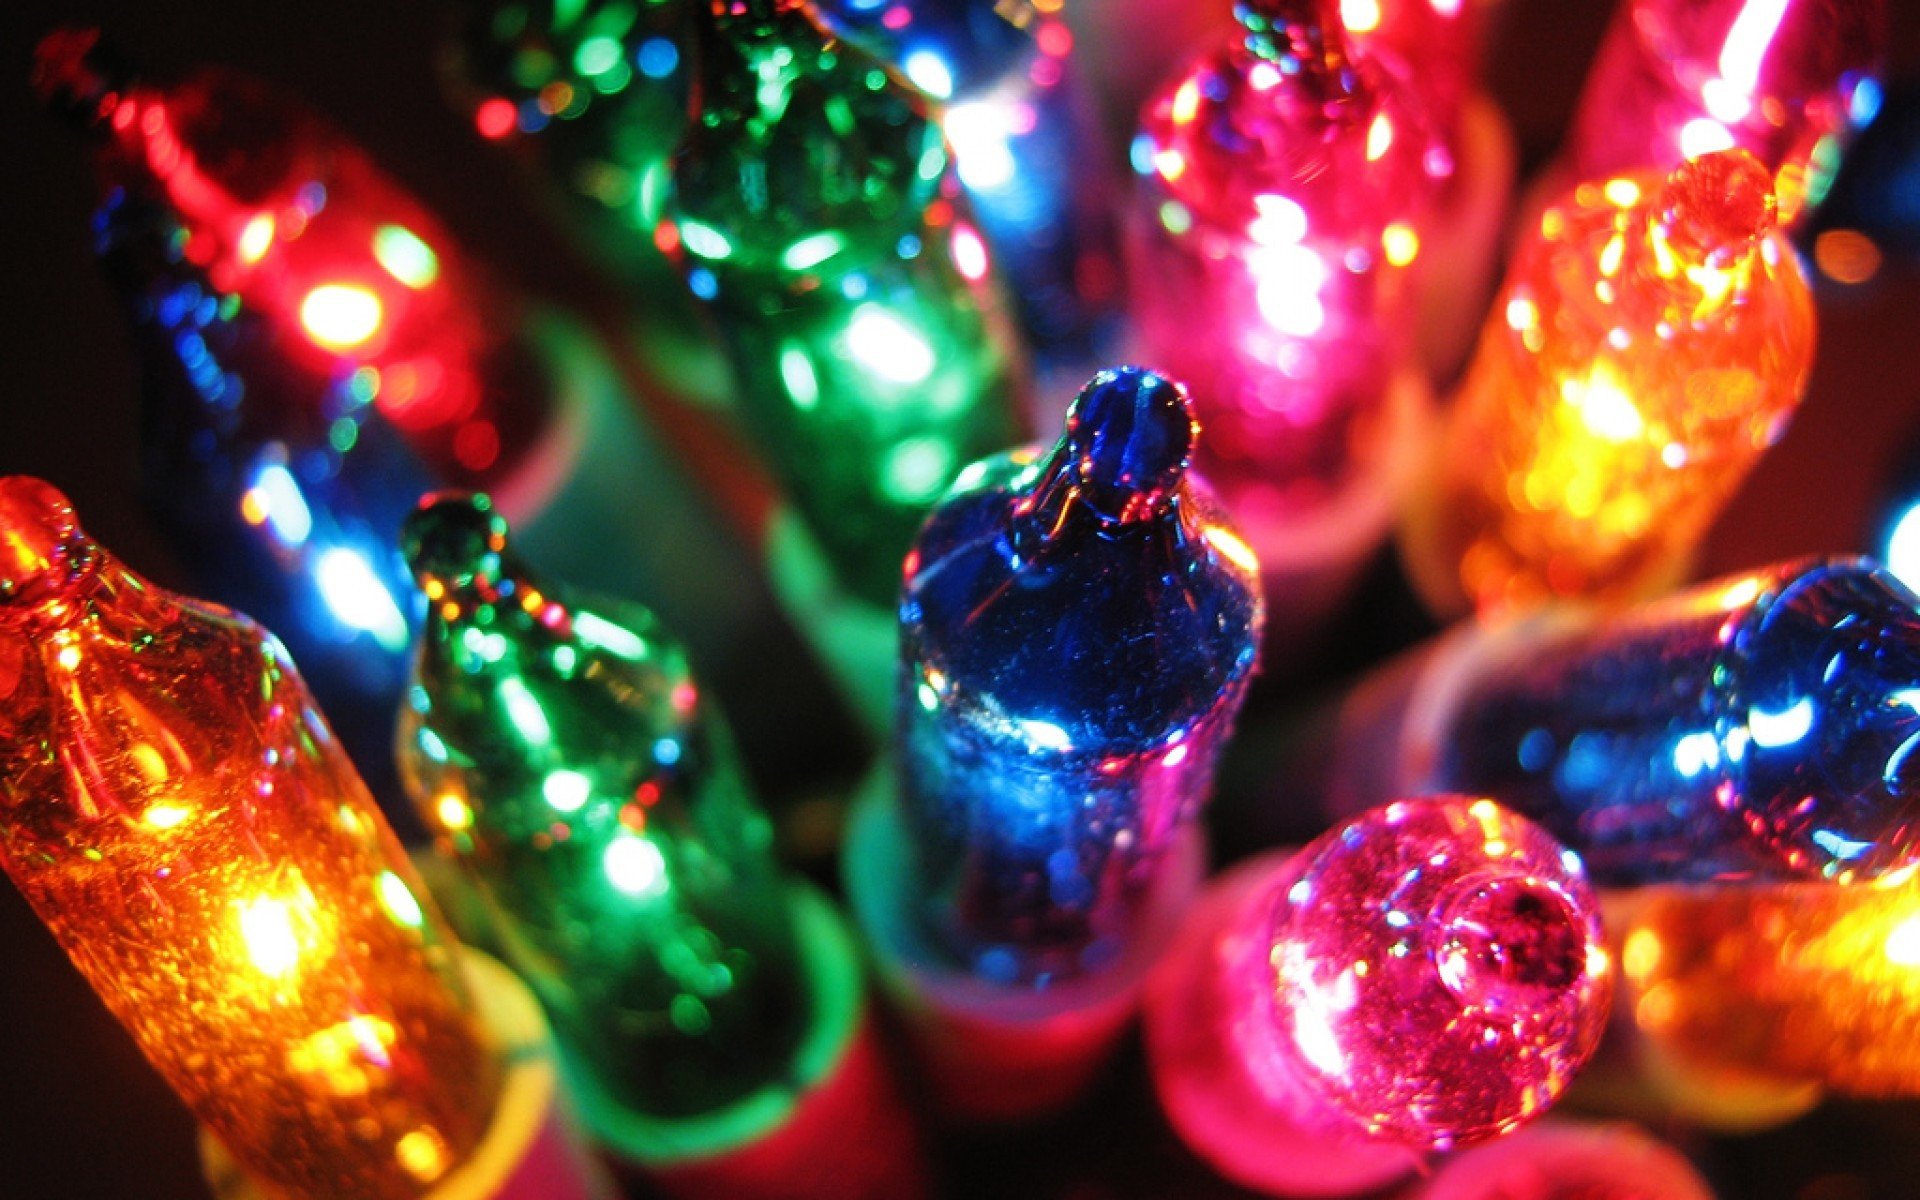 Colorful Christmas Lights Desktop Background Hd Wallppaer